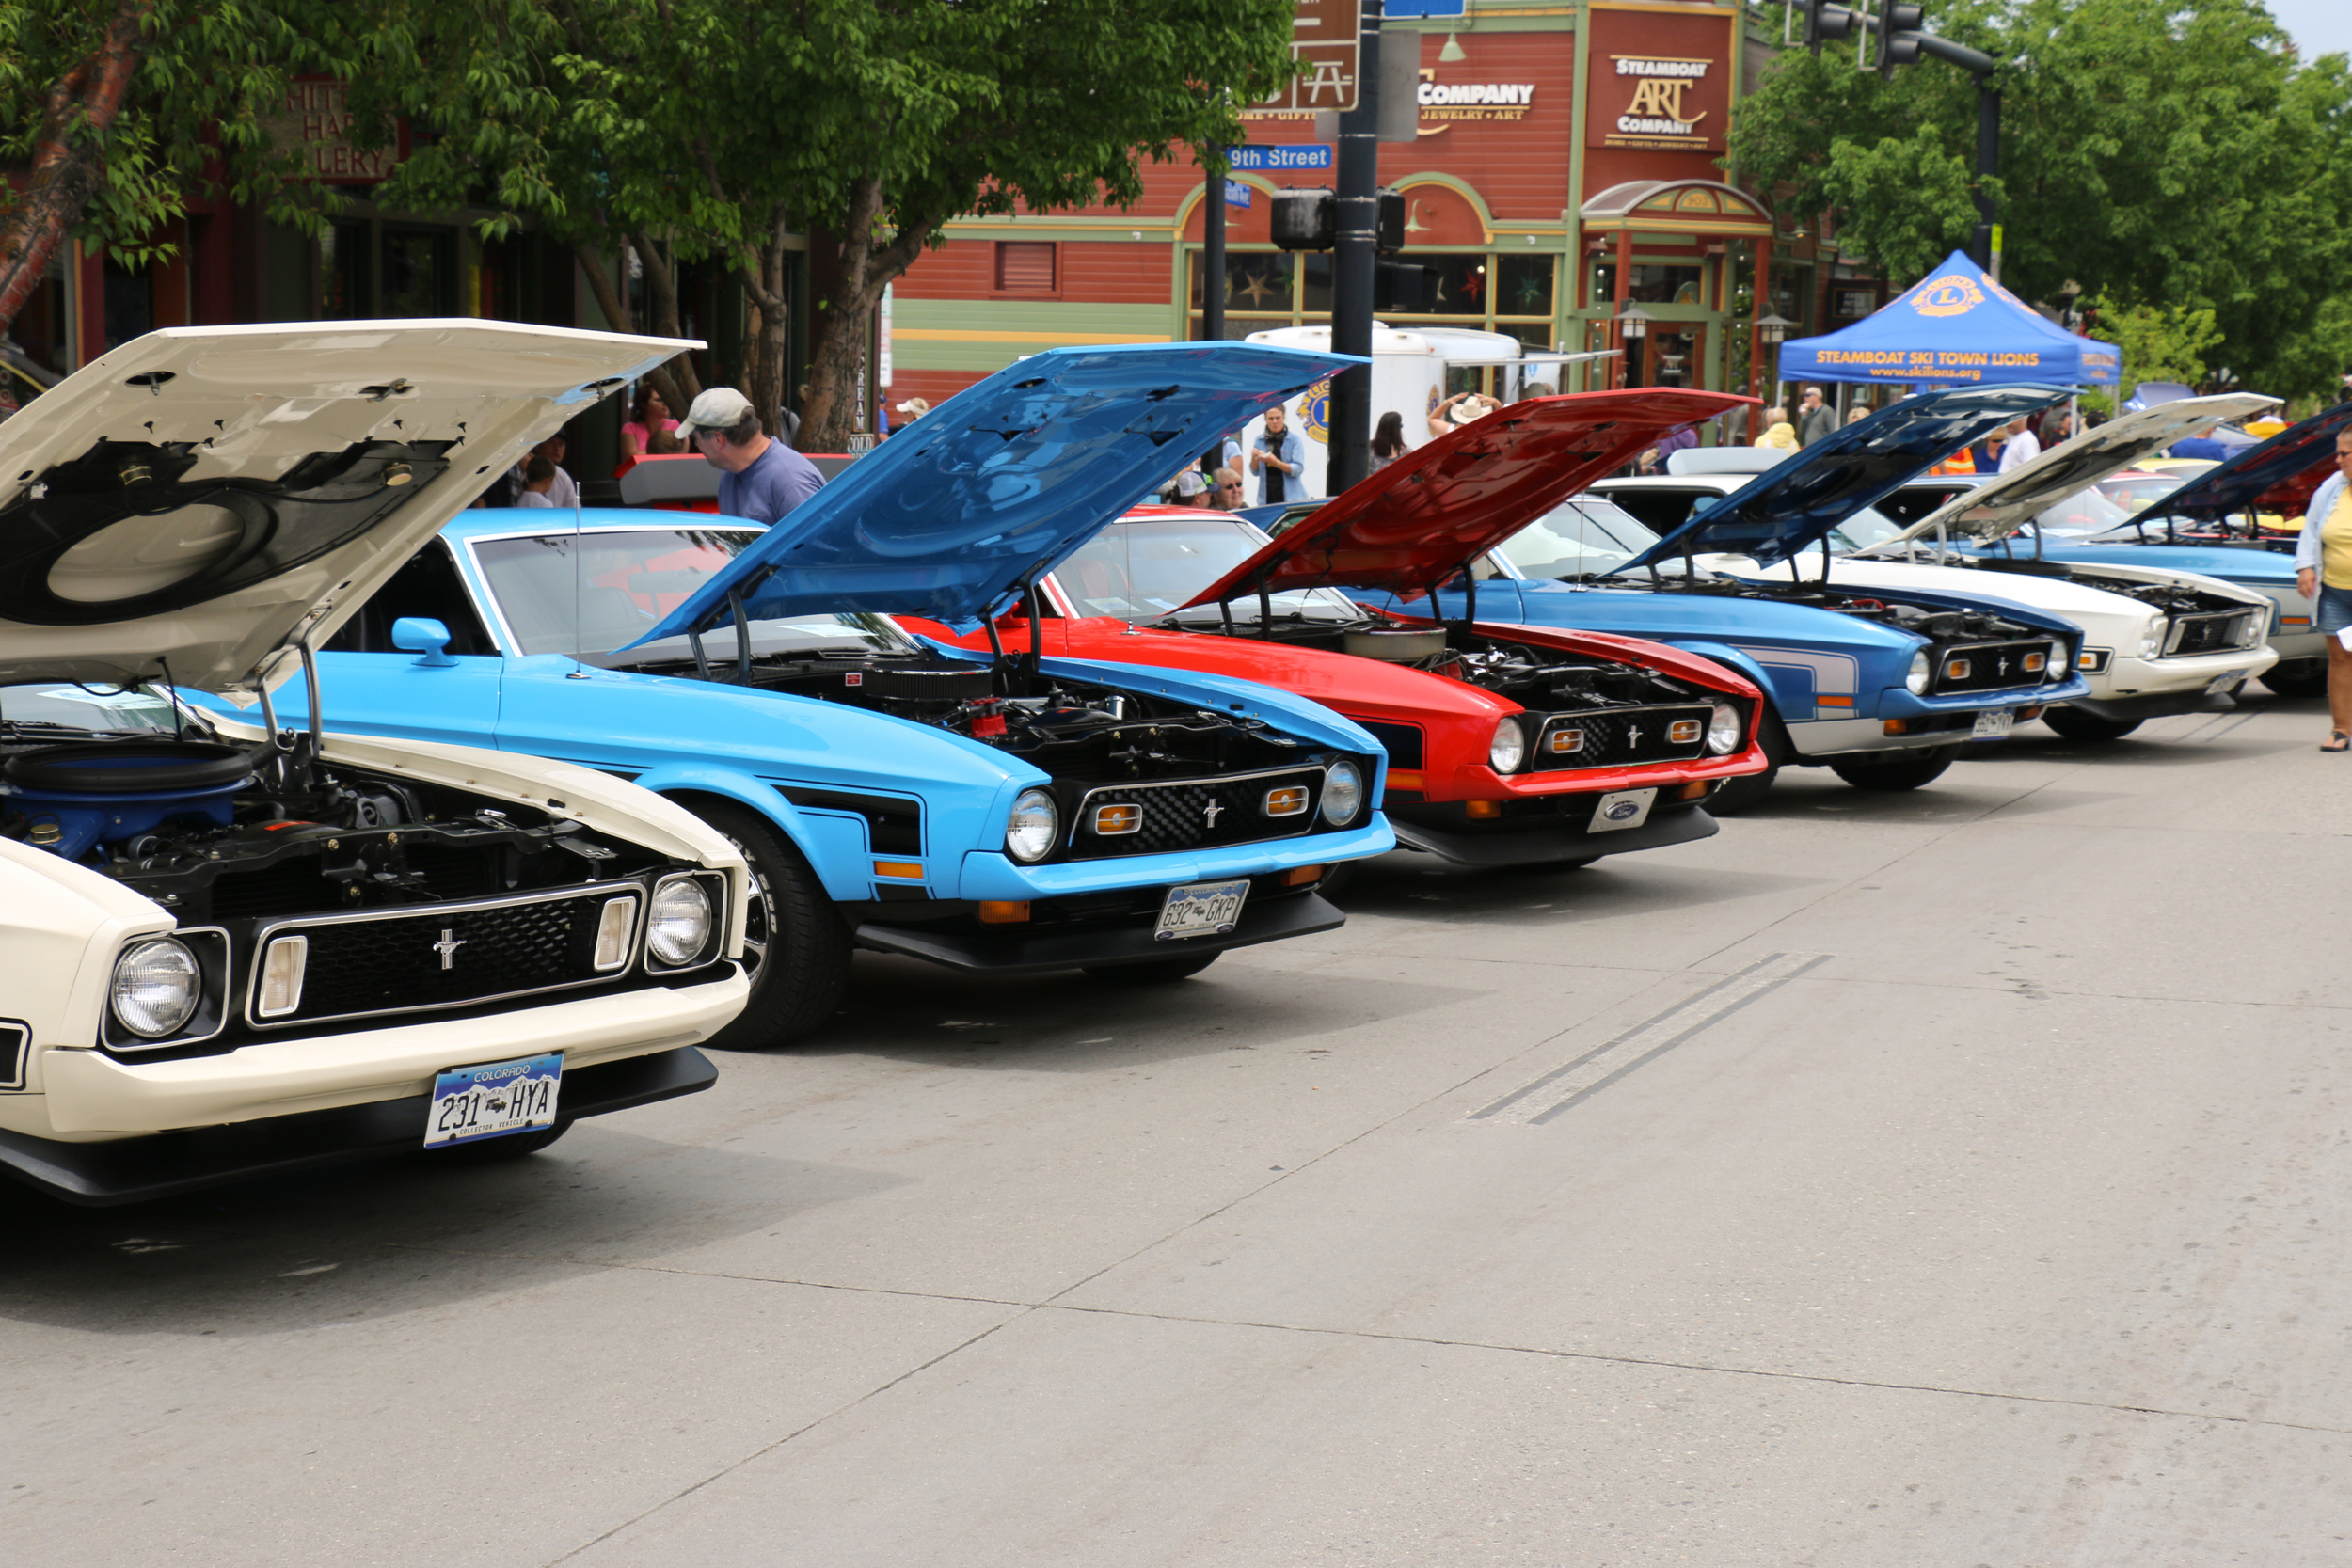 Mustang Roundup in downtown Steamboat